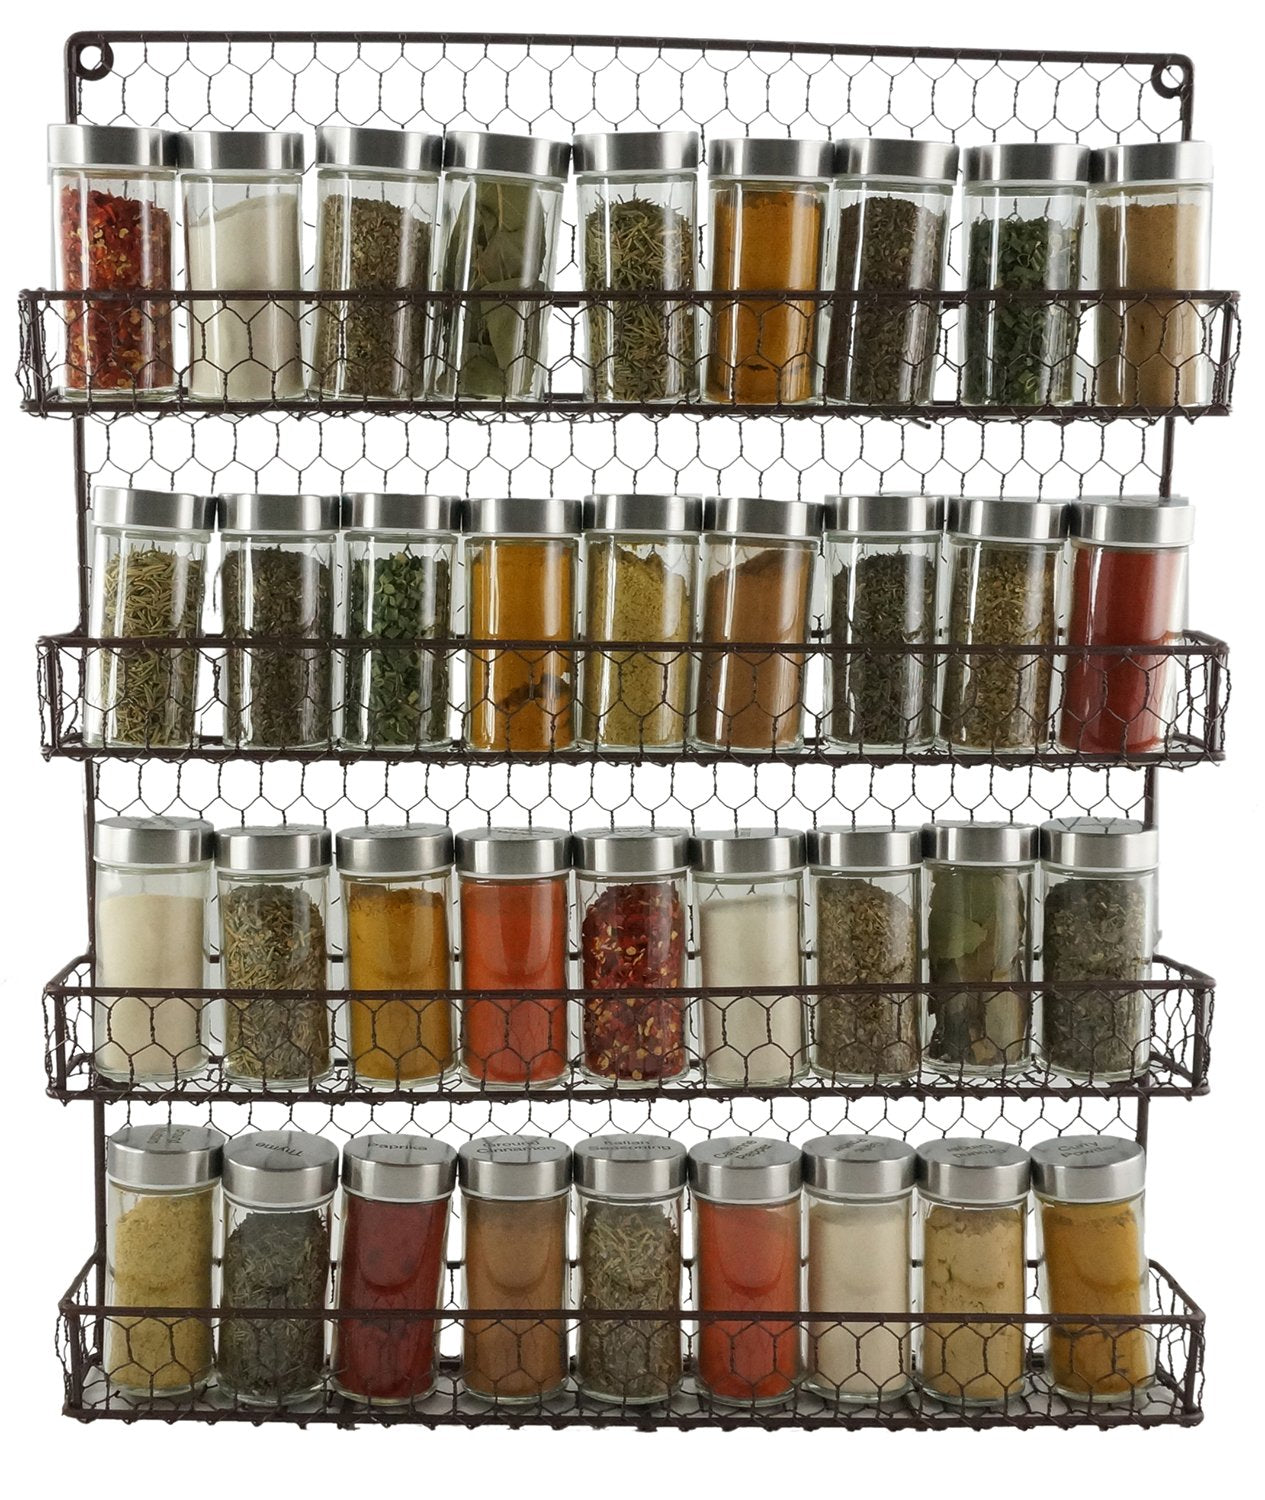 4 Tier Metal Spice Rack Wall Mount Kitchen Spices Organizer Pantry Cabinet Hanging Herbs Seasoning Jars Storage Closet Door Cupboard Mounted Holder Raw Rustic Brown